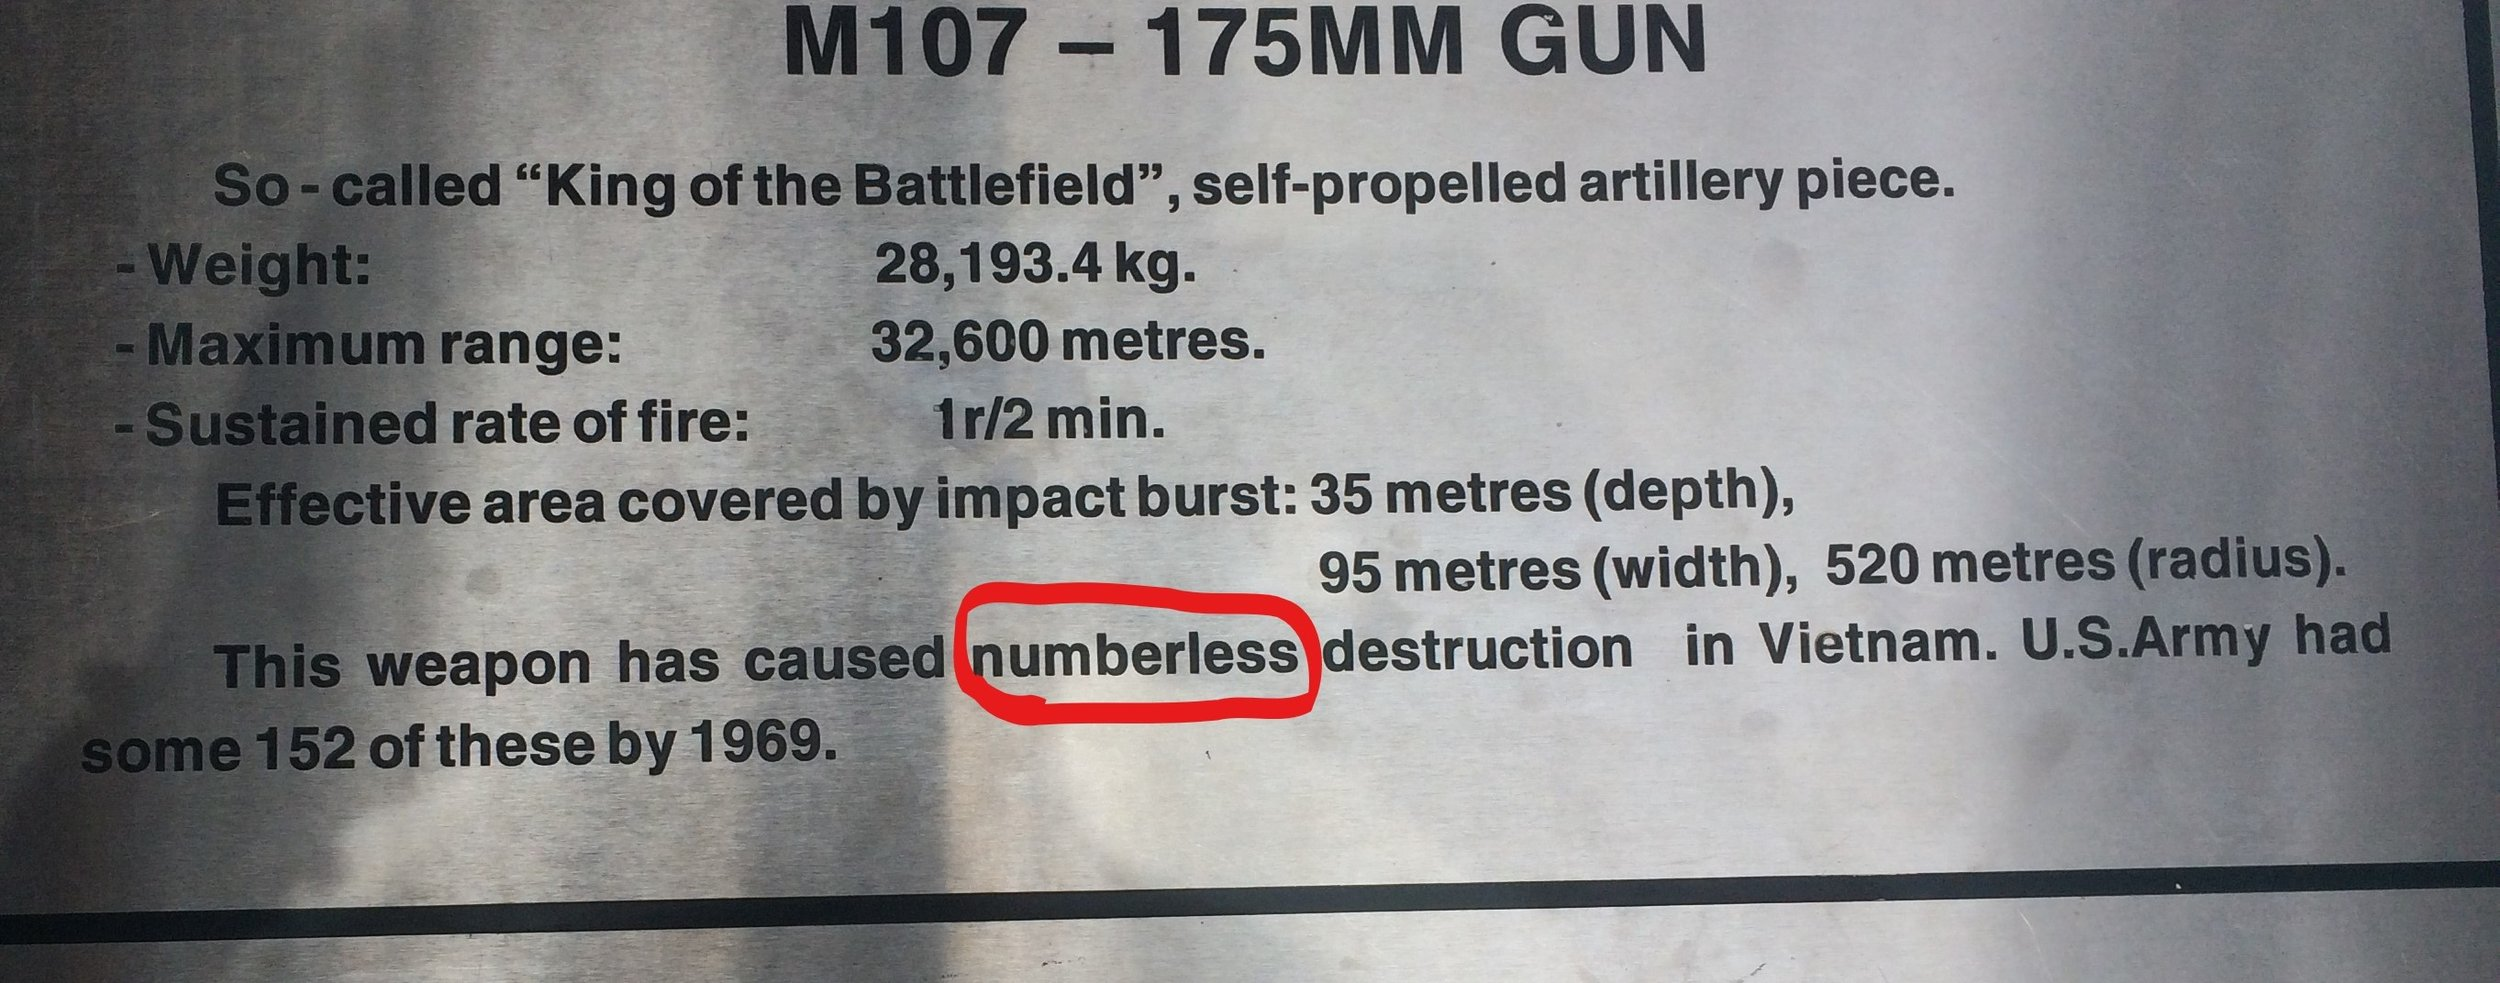 "The War Remnants museum in Ho Chi Minh is a heavy place to be, so it was nice to have some comic relief. I'm glad this artillery caused ""numberless"" destruction! Ho Chi Minh City, Vietnam."